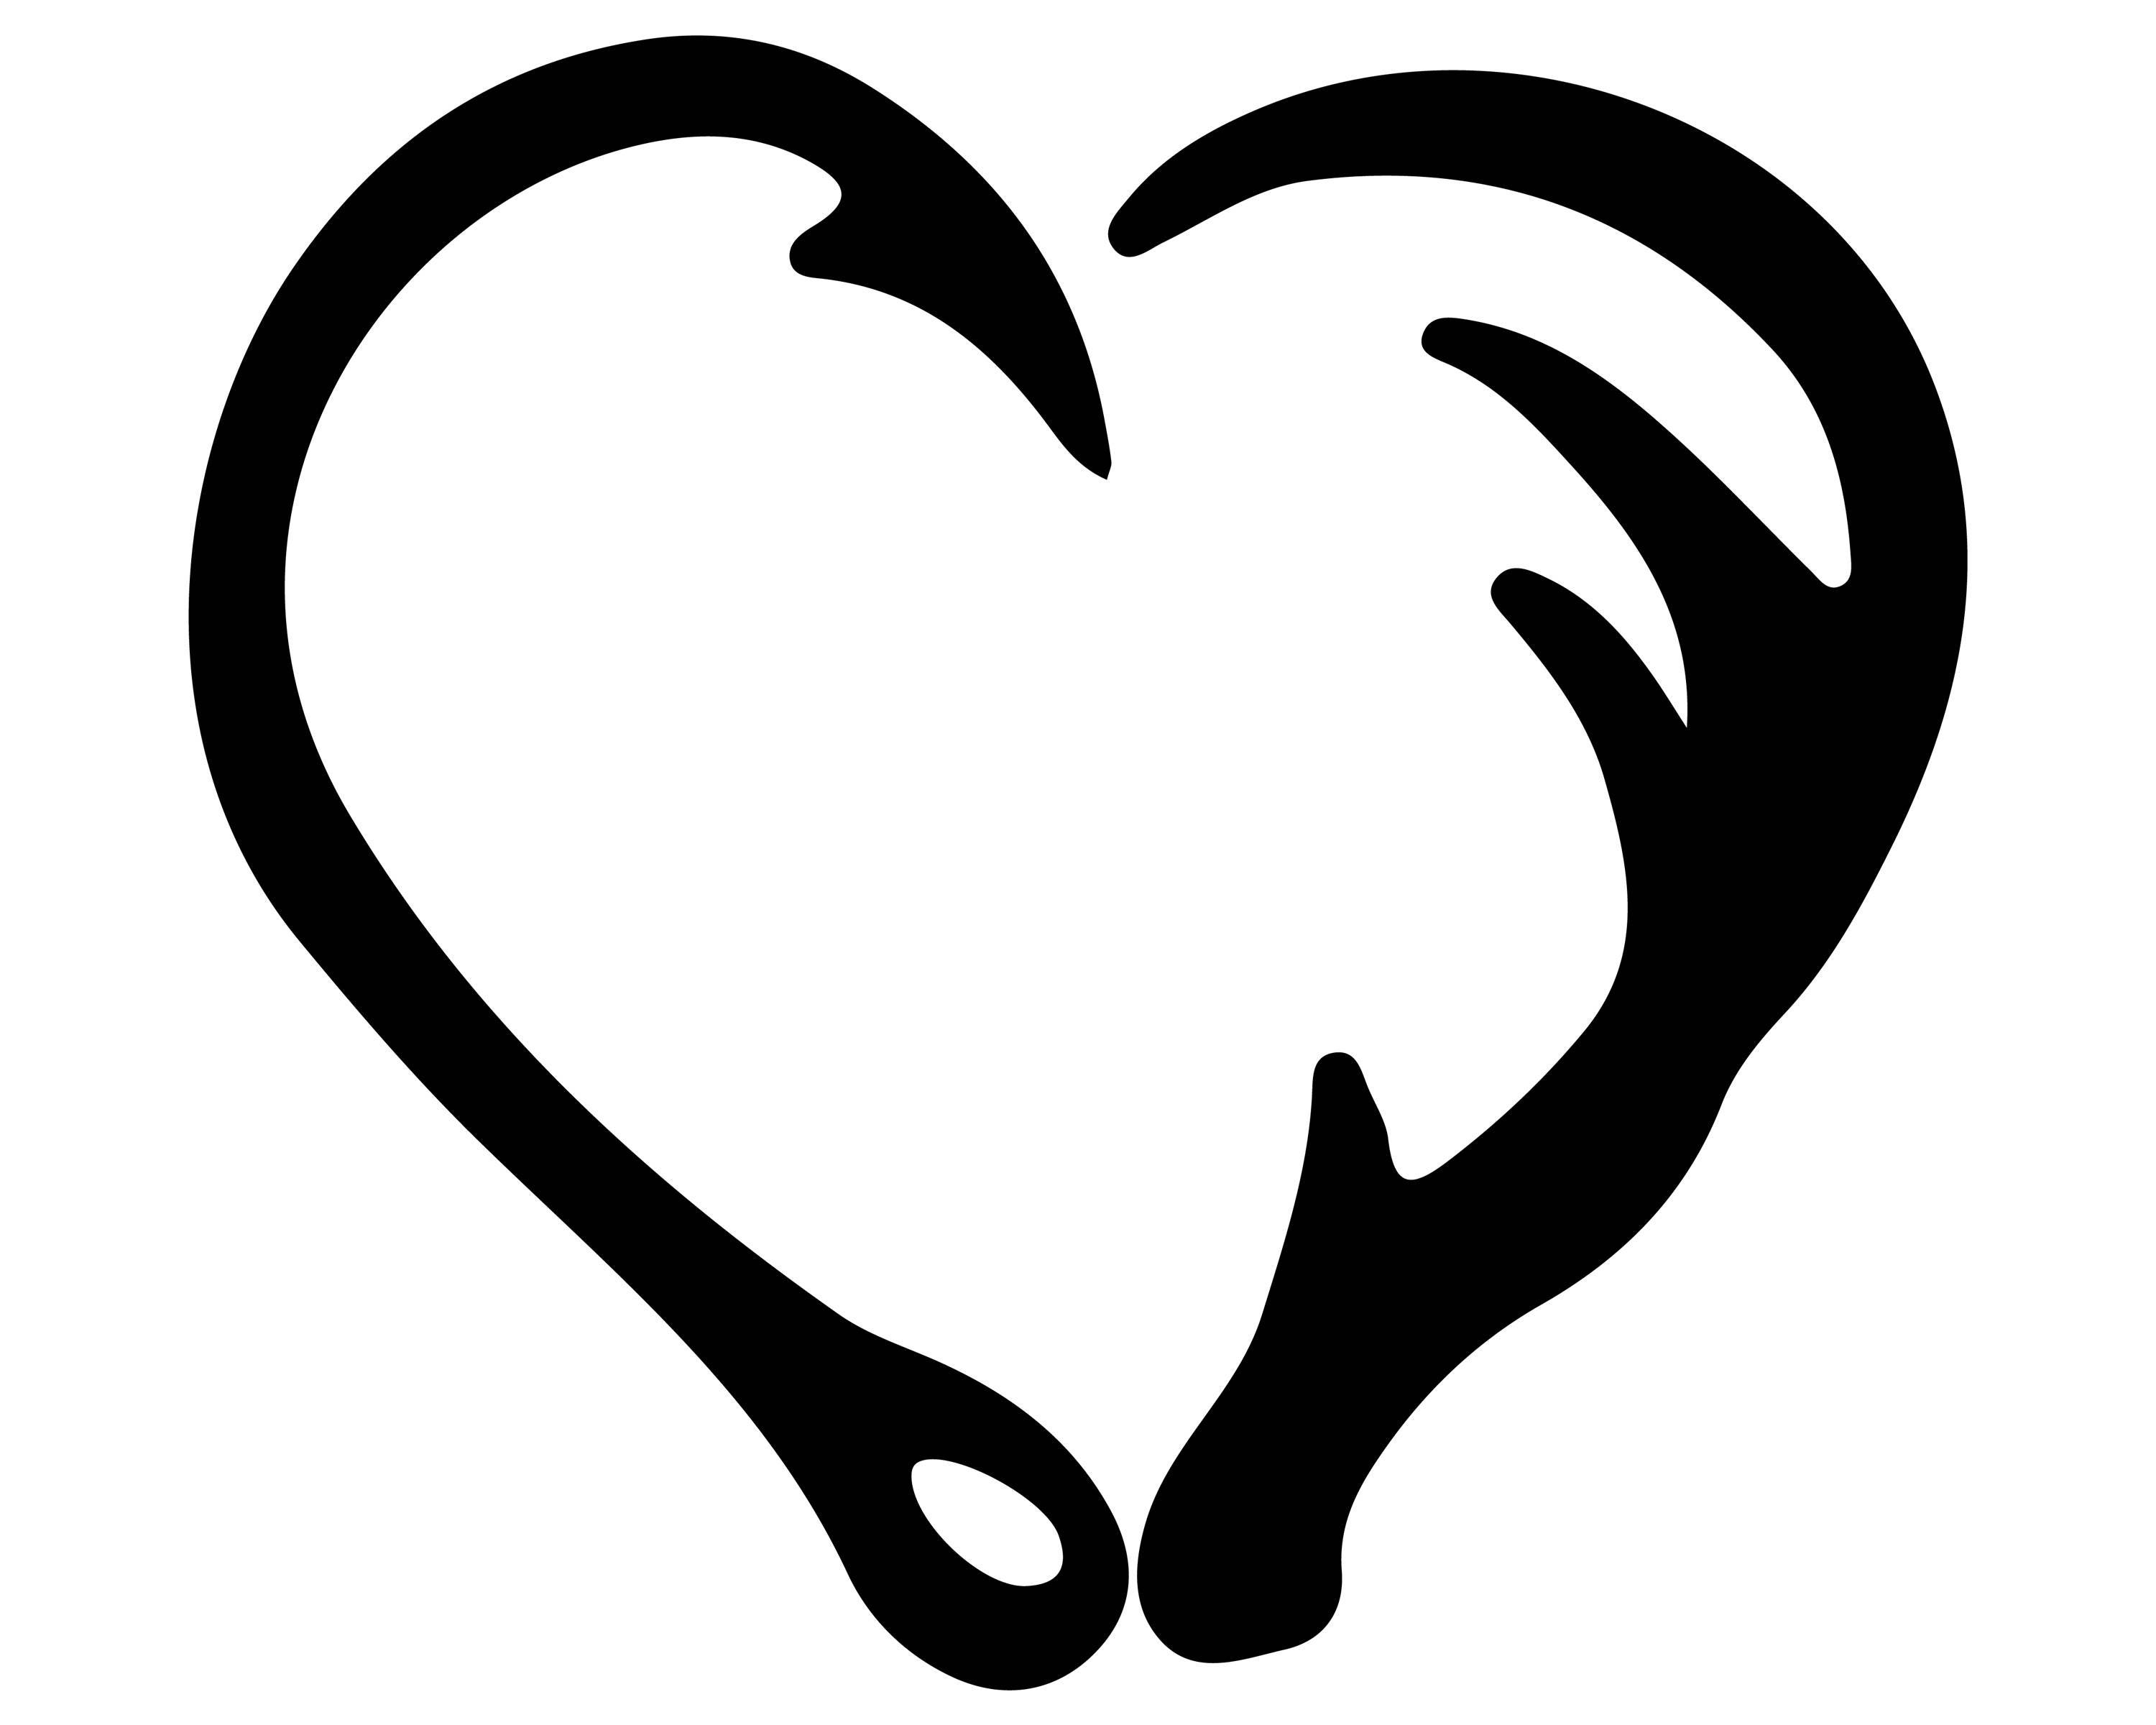 fish hook and antler heart silhouette clipart png and svg rh etsy com fish hook clipart black and white fish hook clip art free